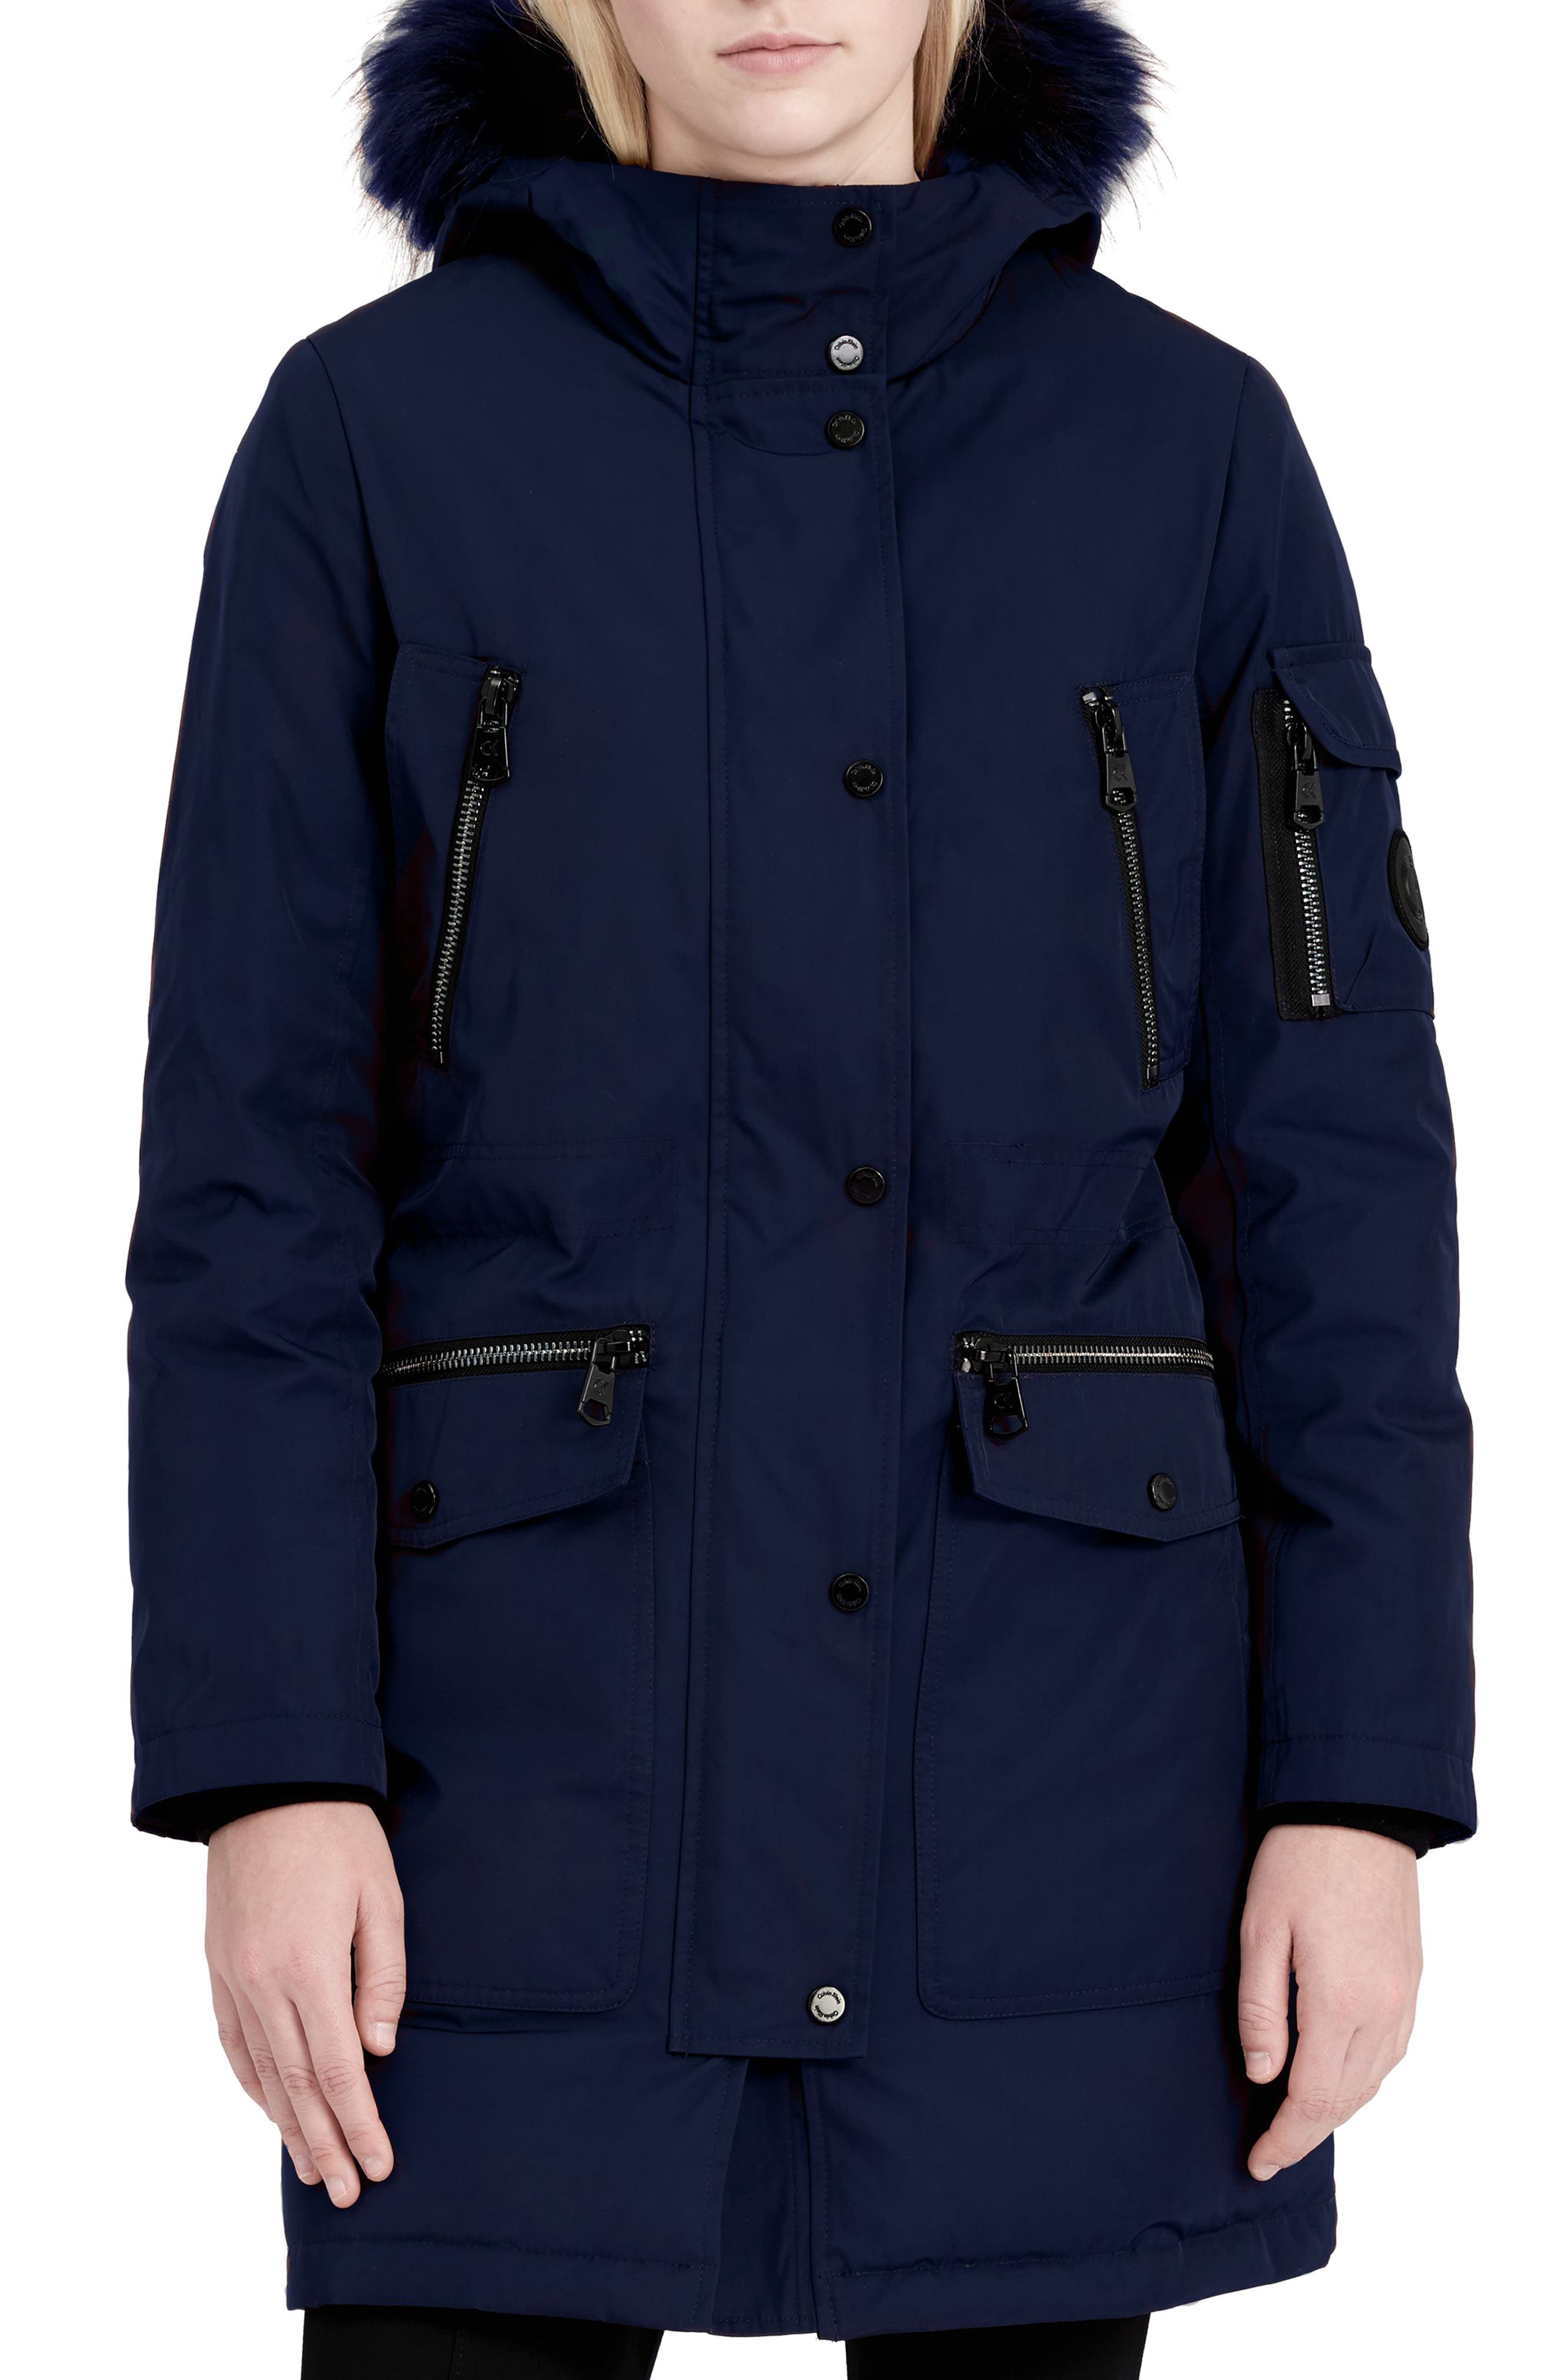 Expedition Hooded Down Parka with Faux Fur Trim,                             Main thumbnail 2, color,